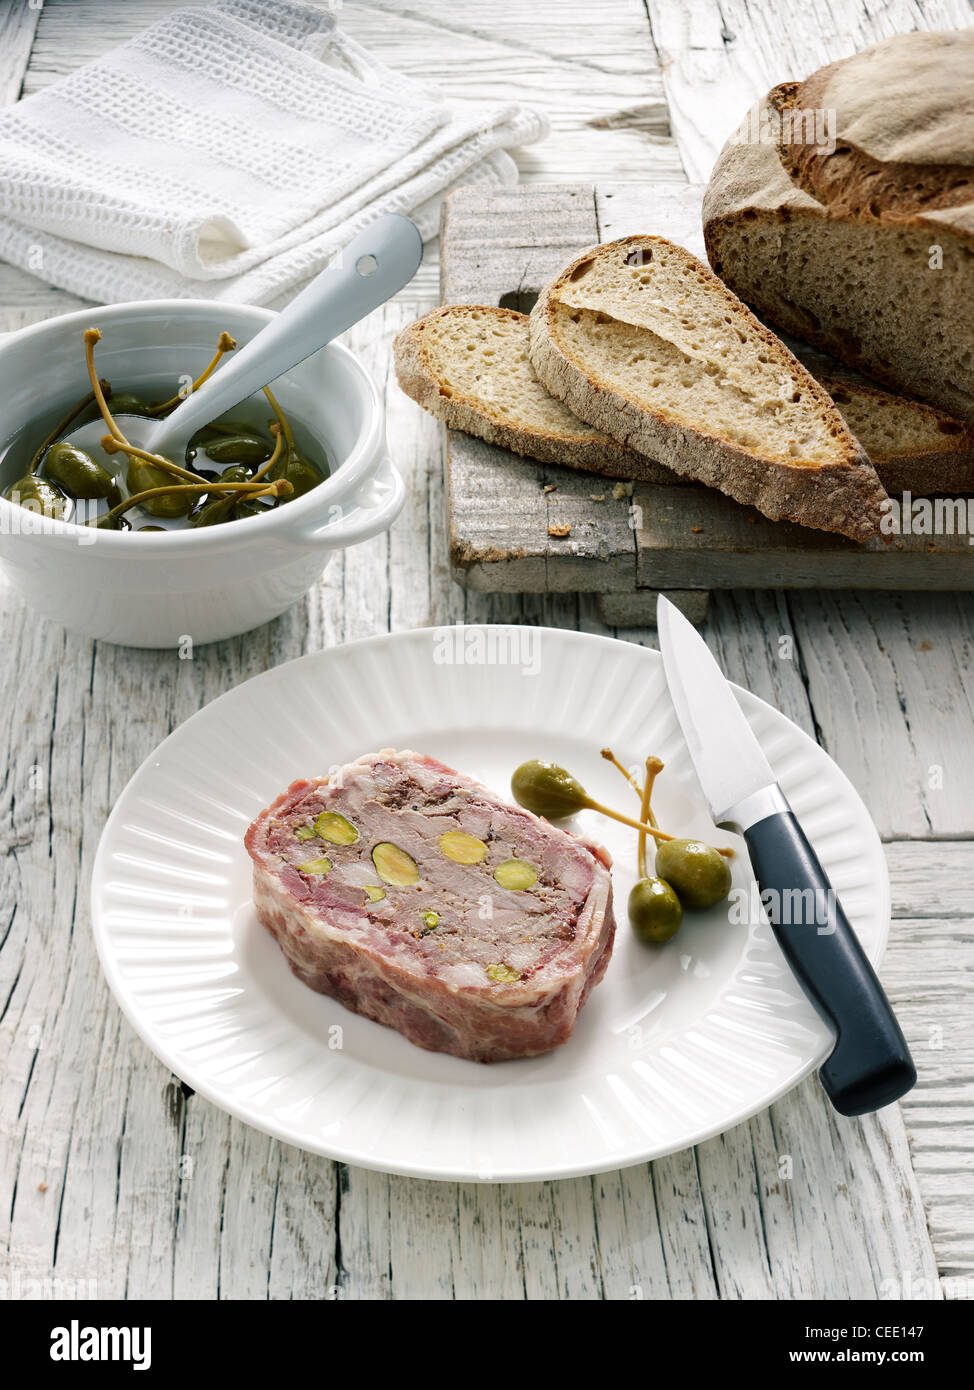 Duck pate capers crust bread white plate - Stock Image